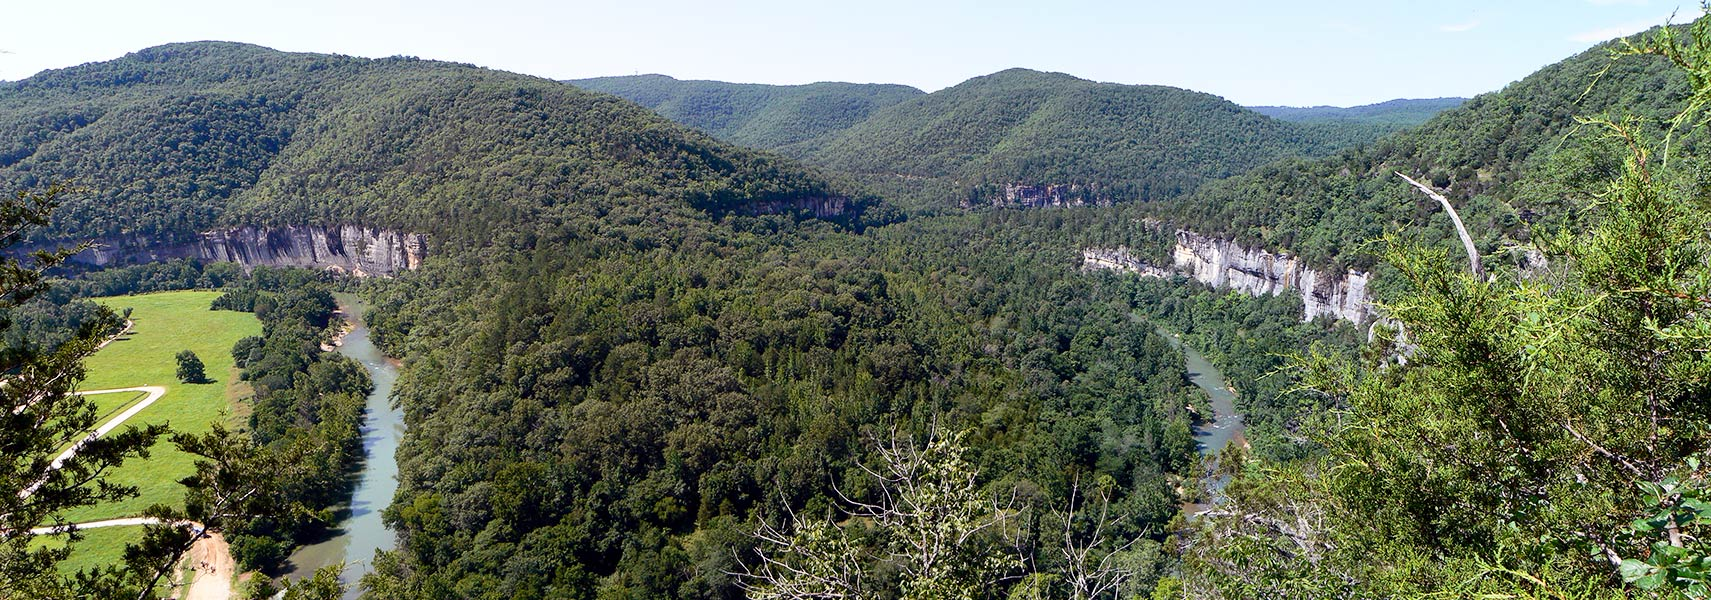 View of the Ozarks from the Buffalo National River, Arkansas